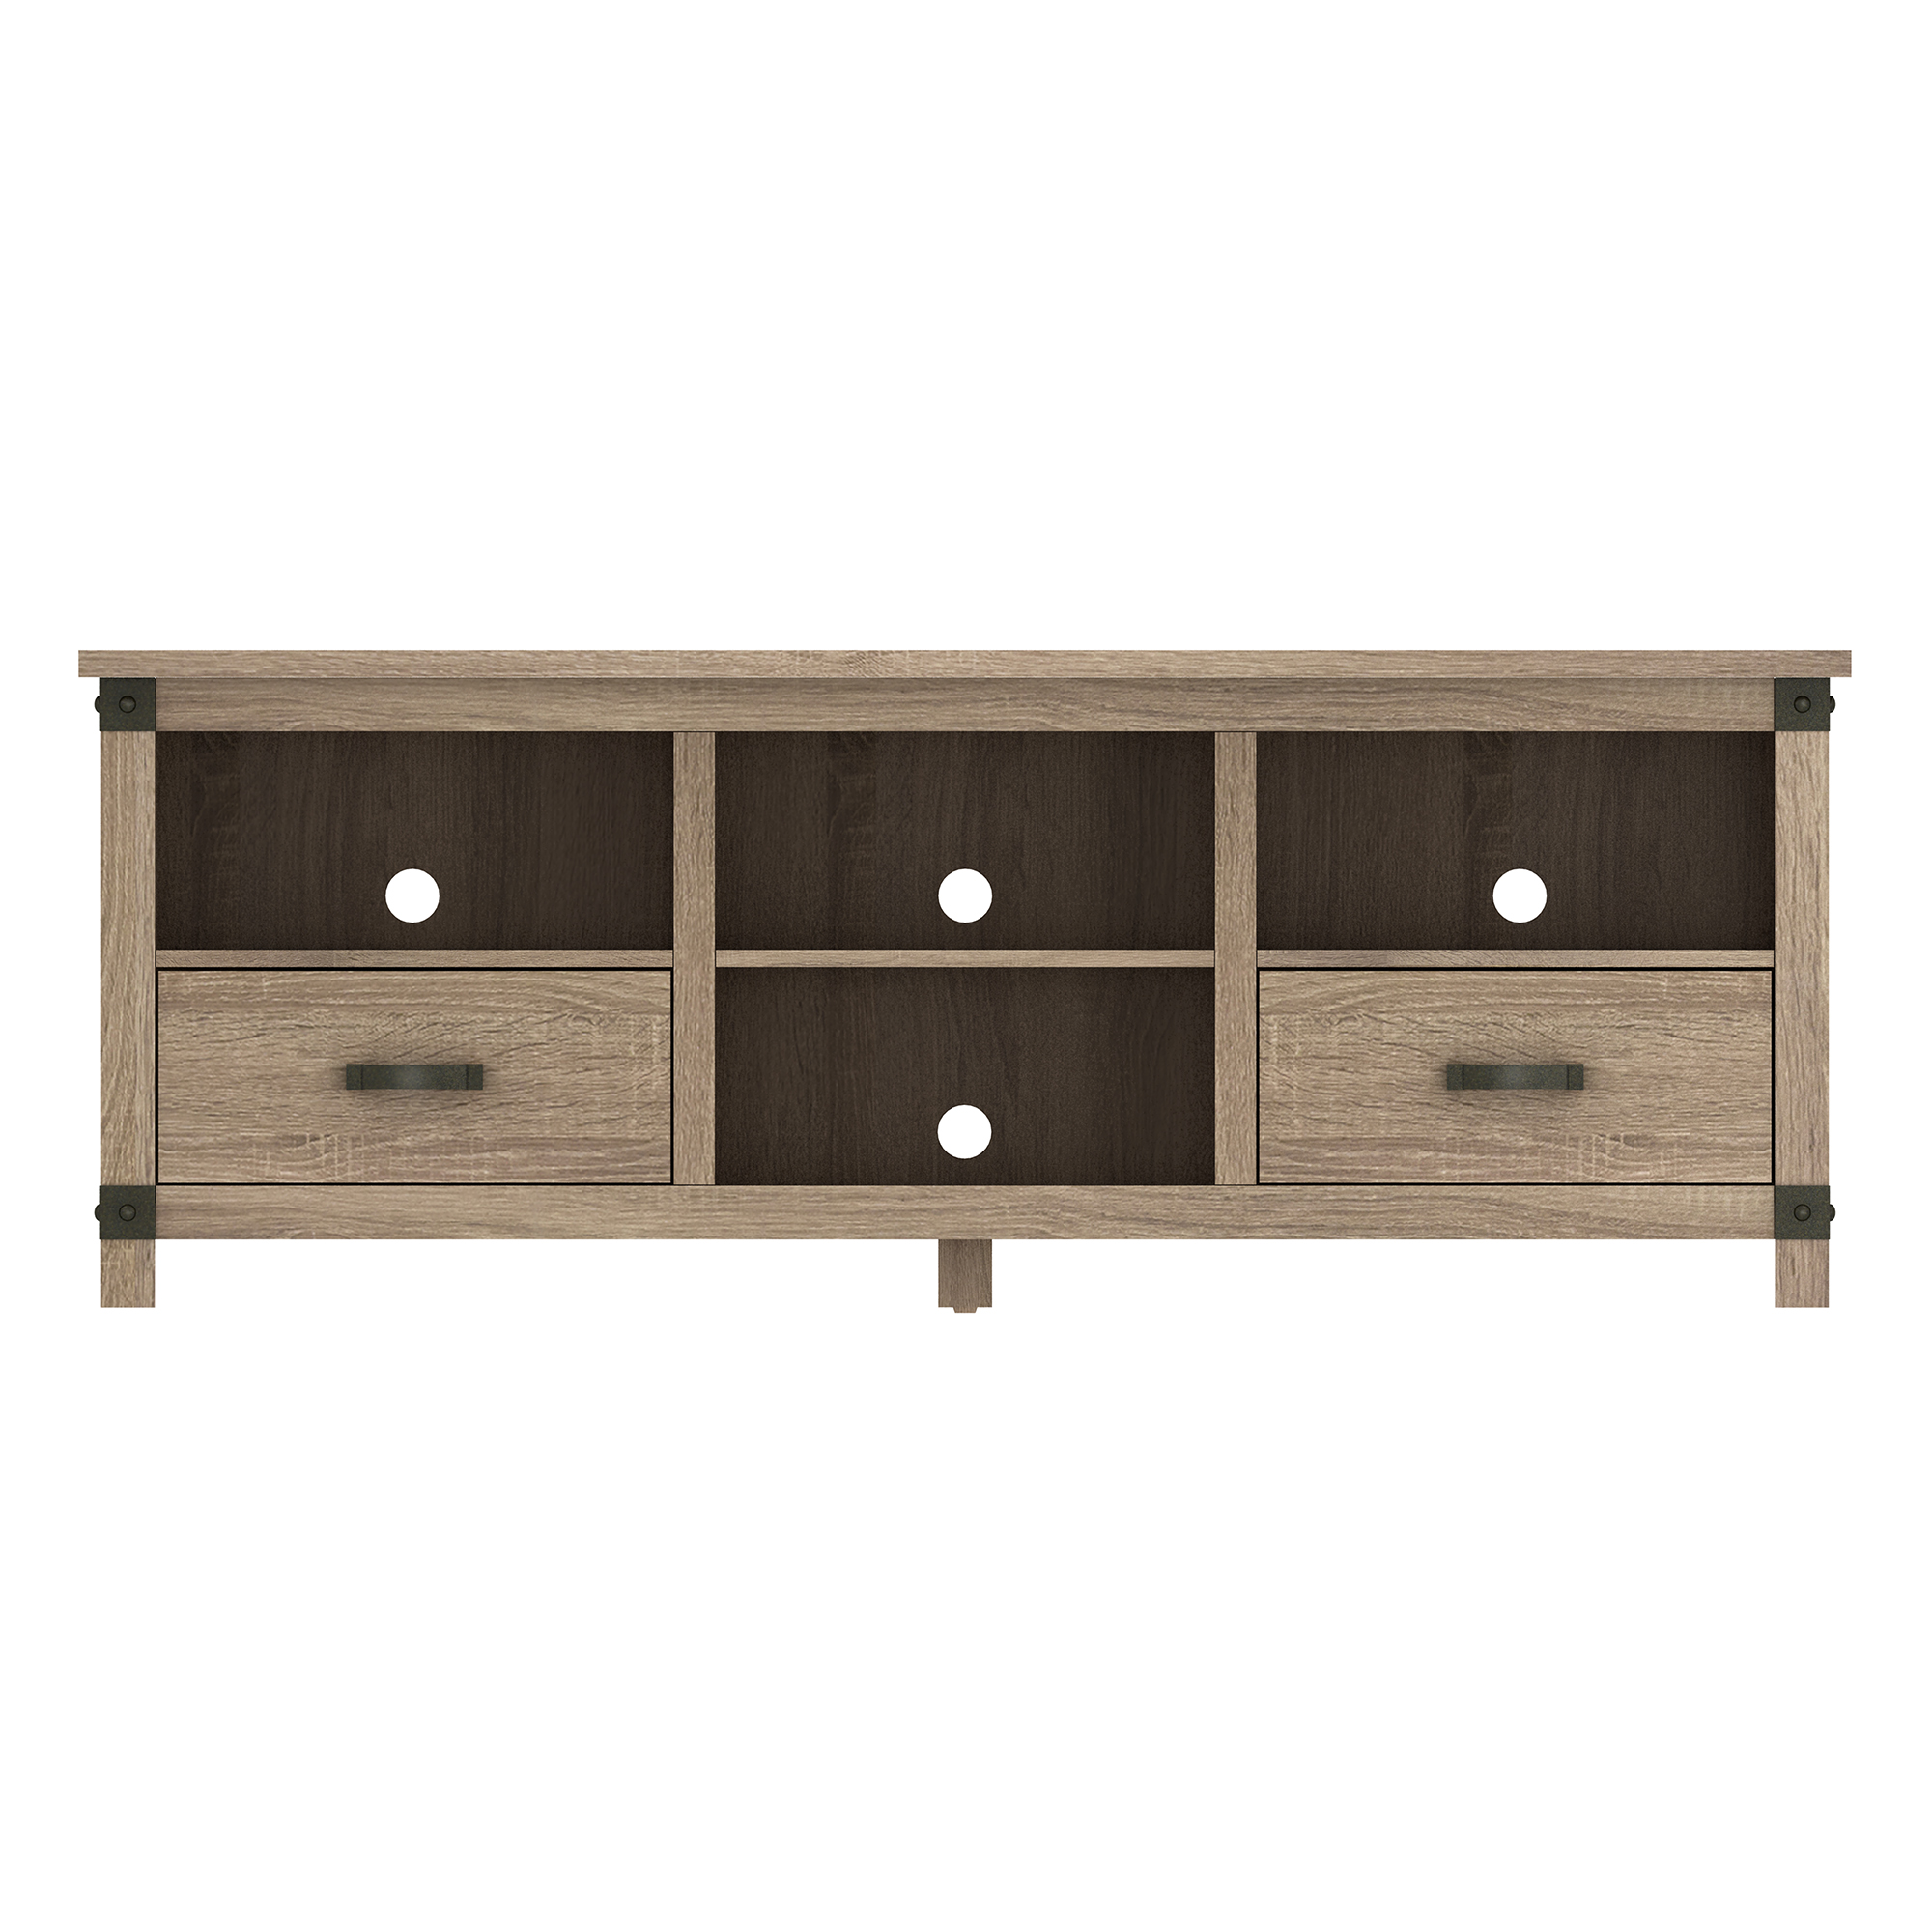 Croxley Minden Oak Tv Stand With Drawers For Tvs Up To 70 Walmart Com